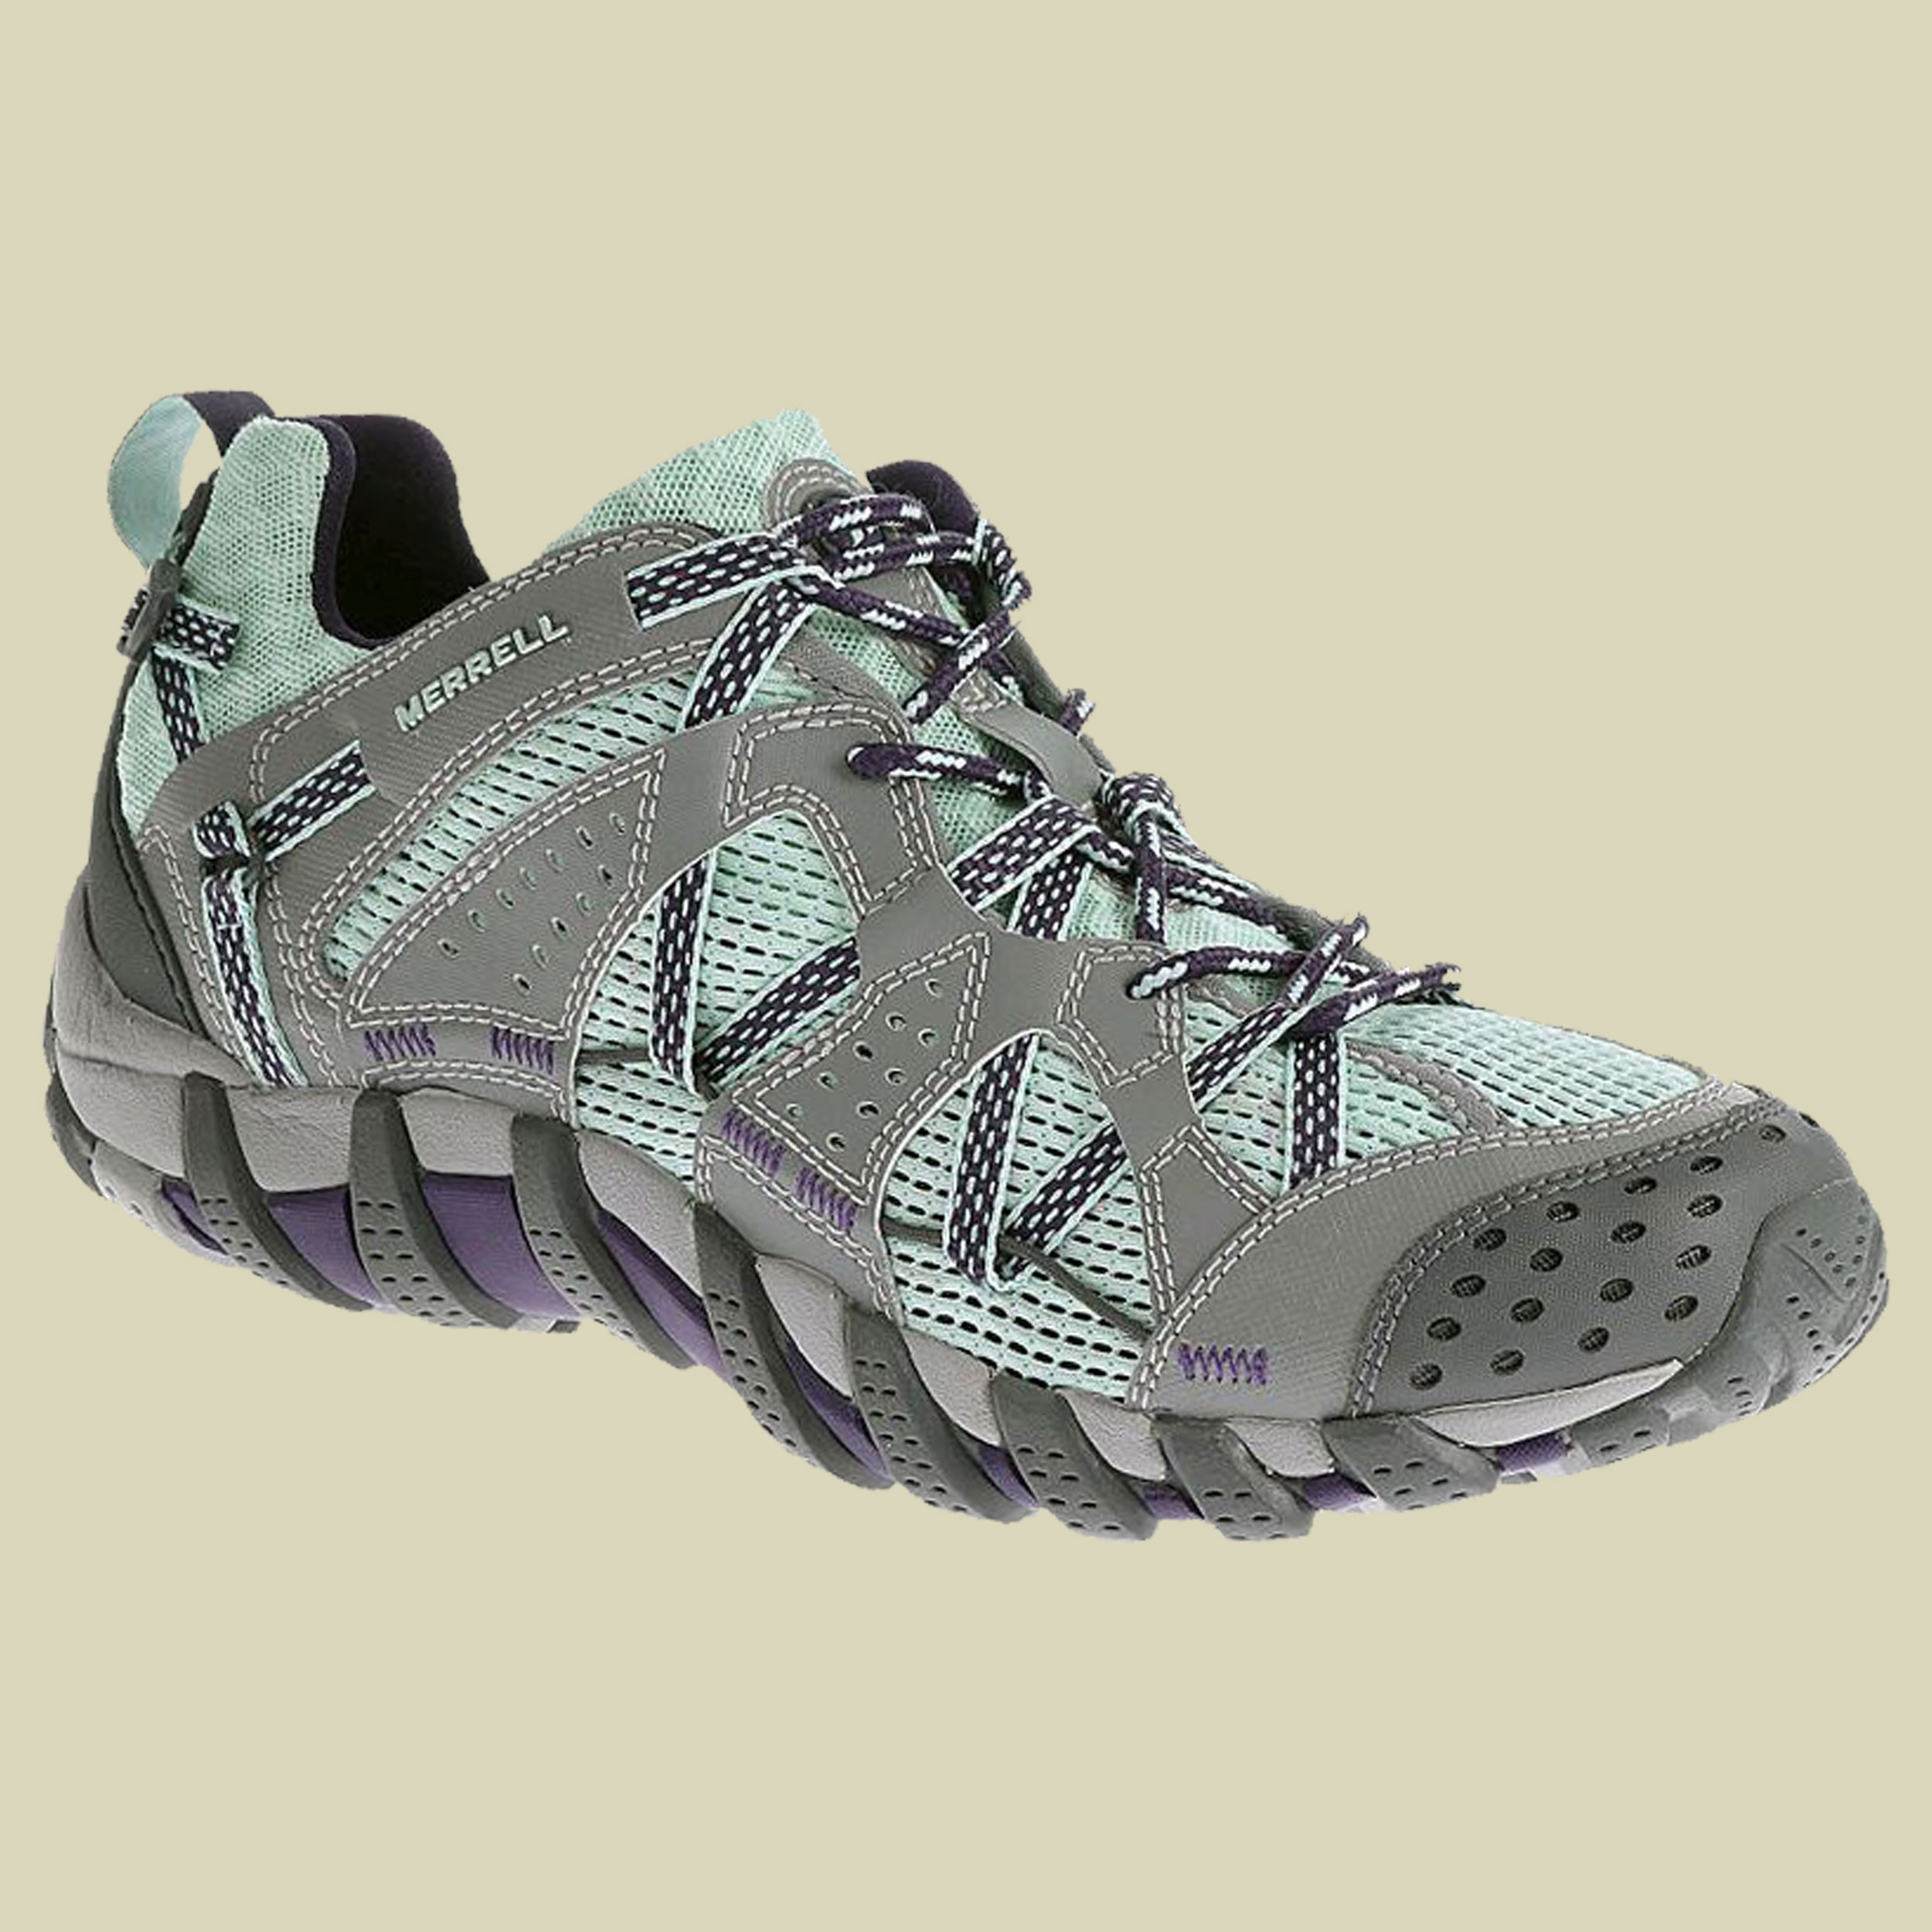 Merrell Waterpro Maipo Damen Waterproof Walking Schuhe Blau